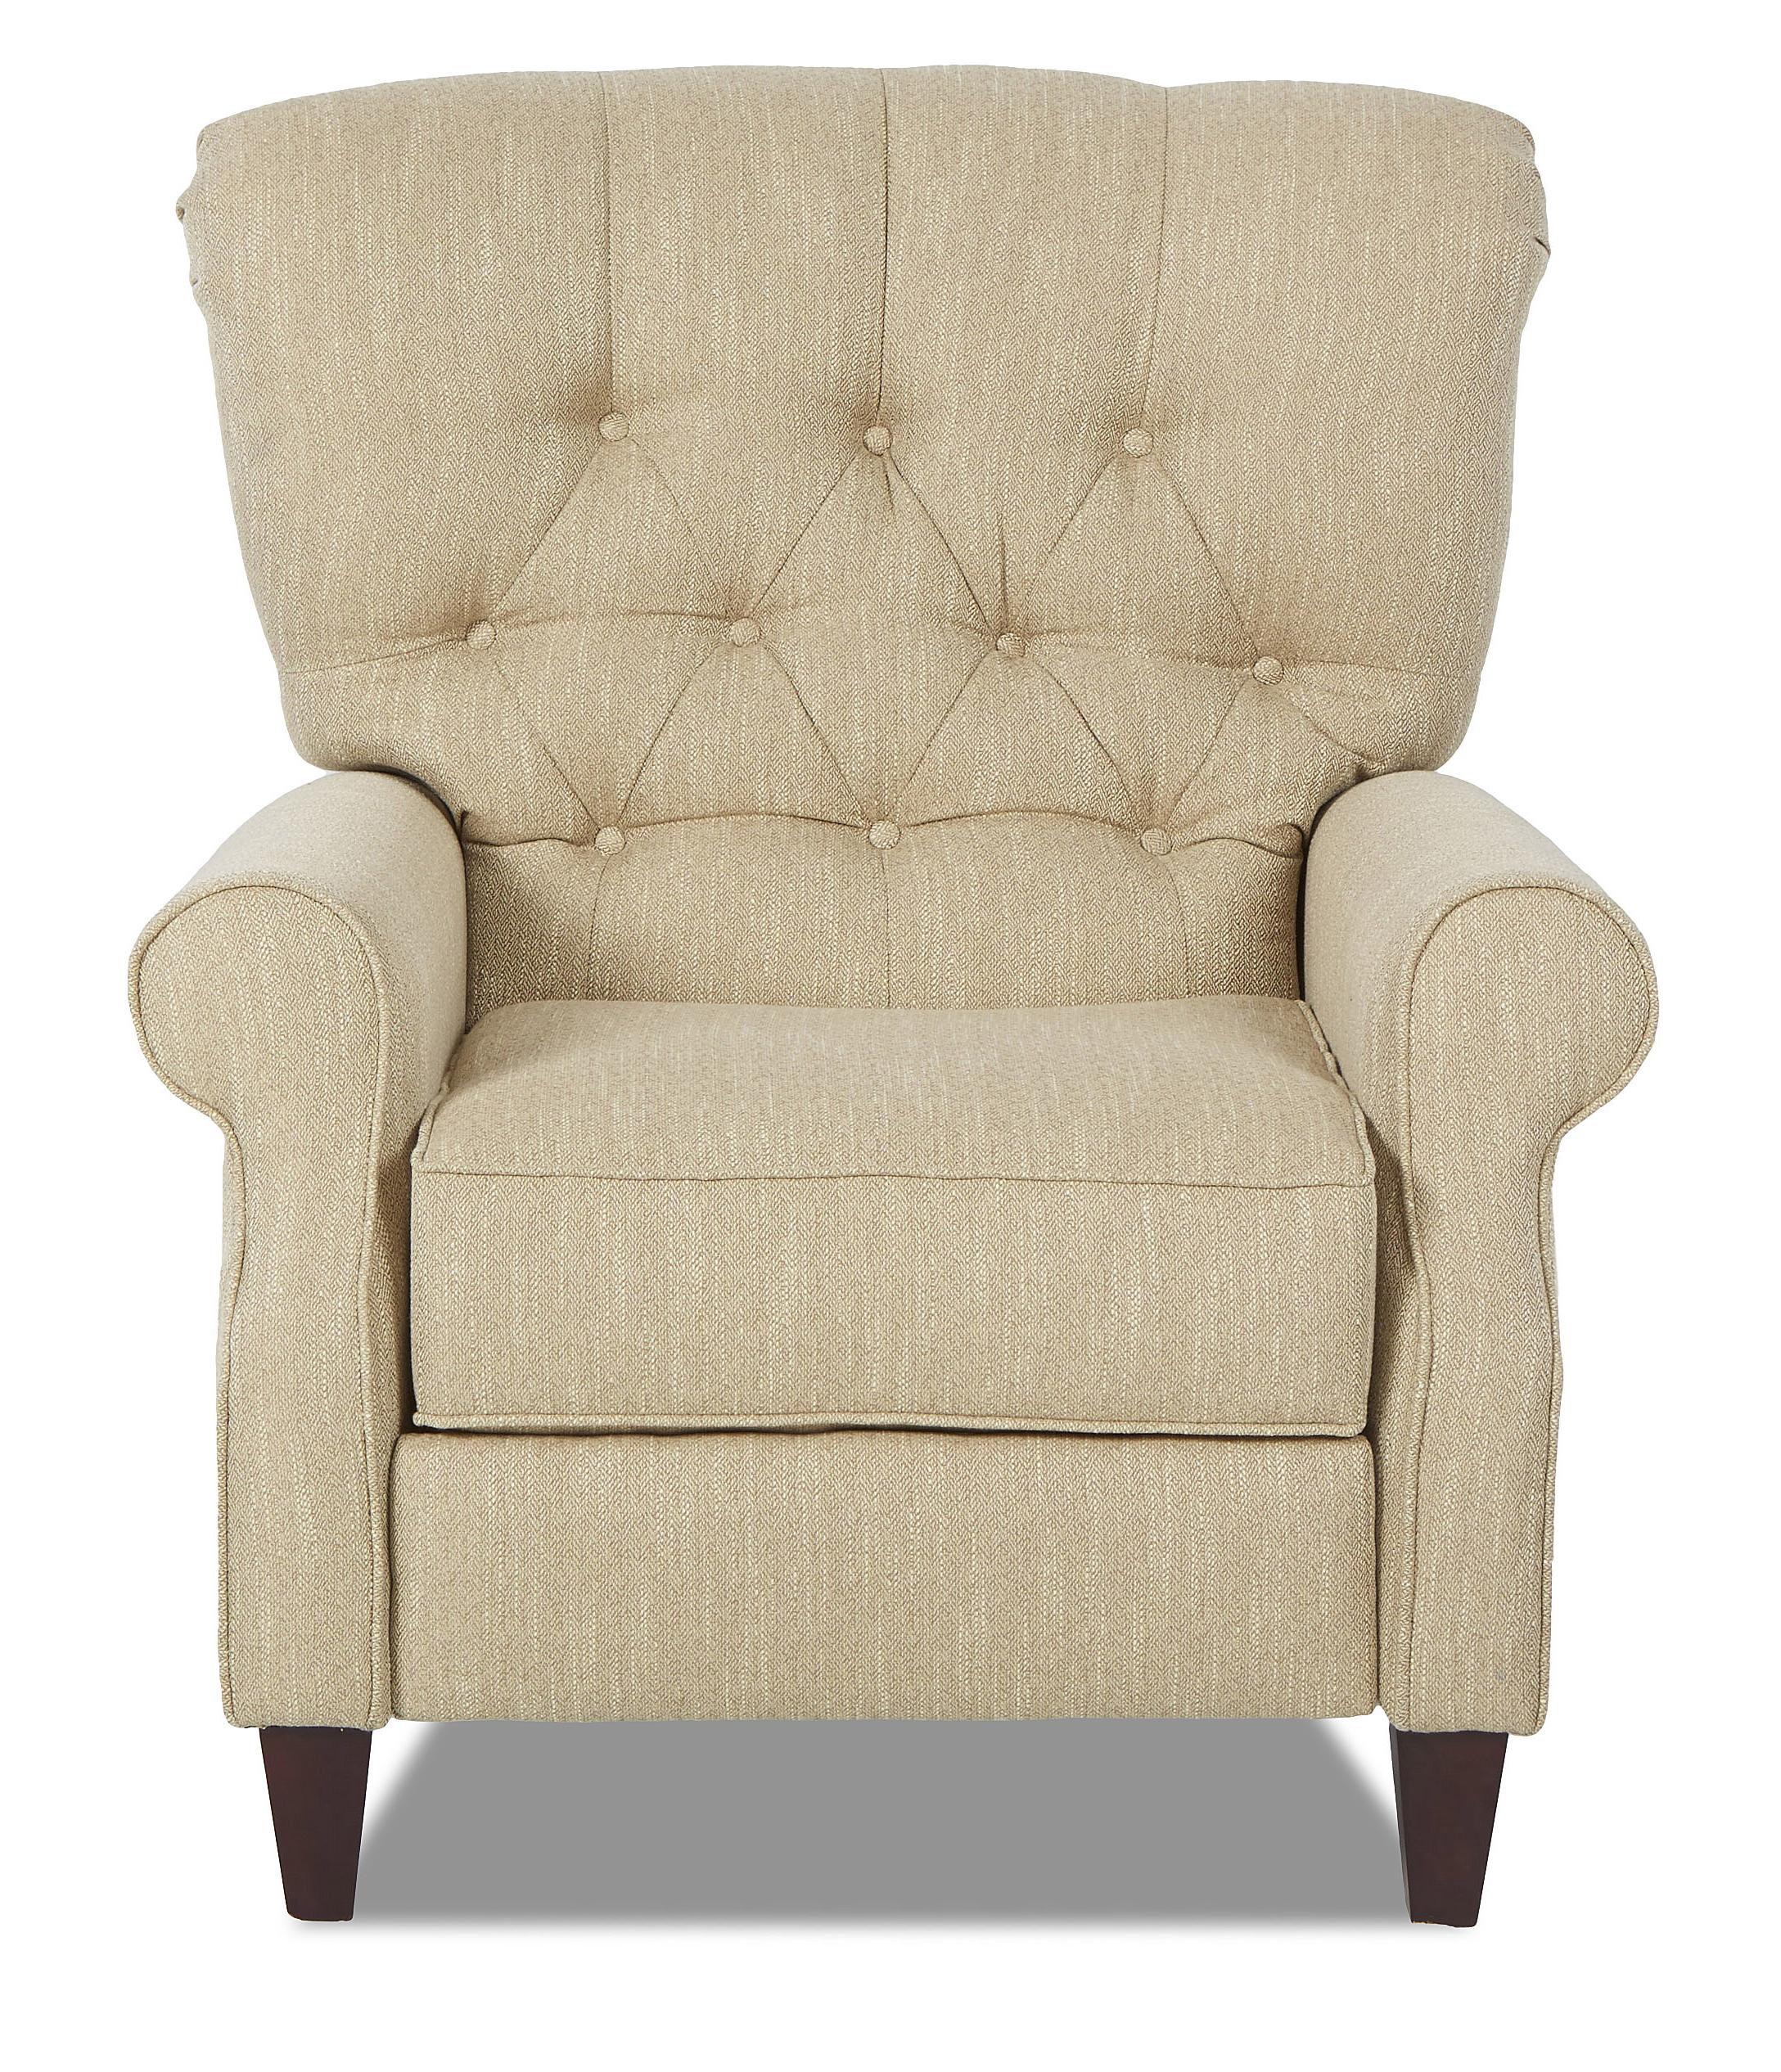 Traditional Power High Leg Recliner with Tufted Back